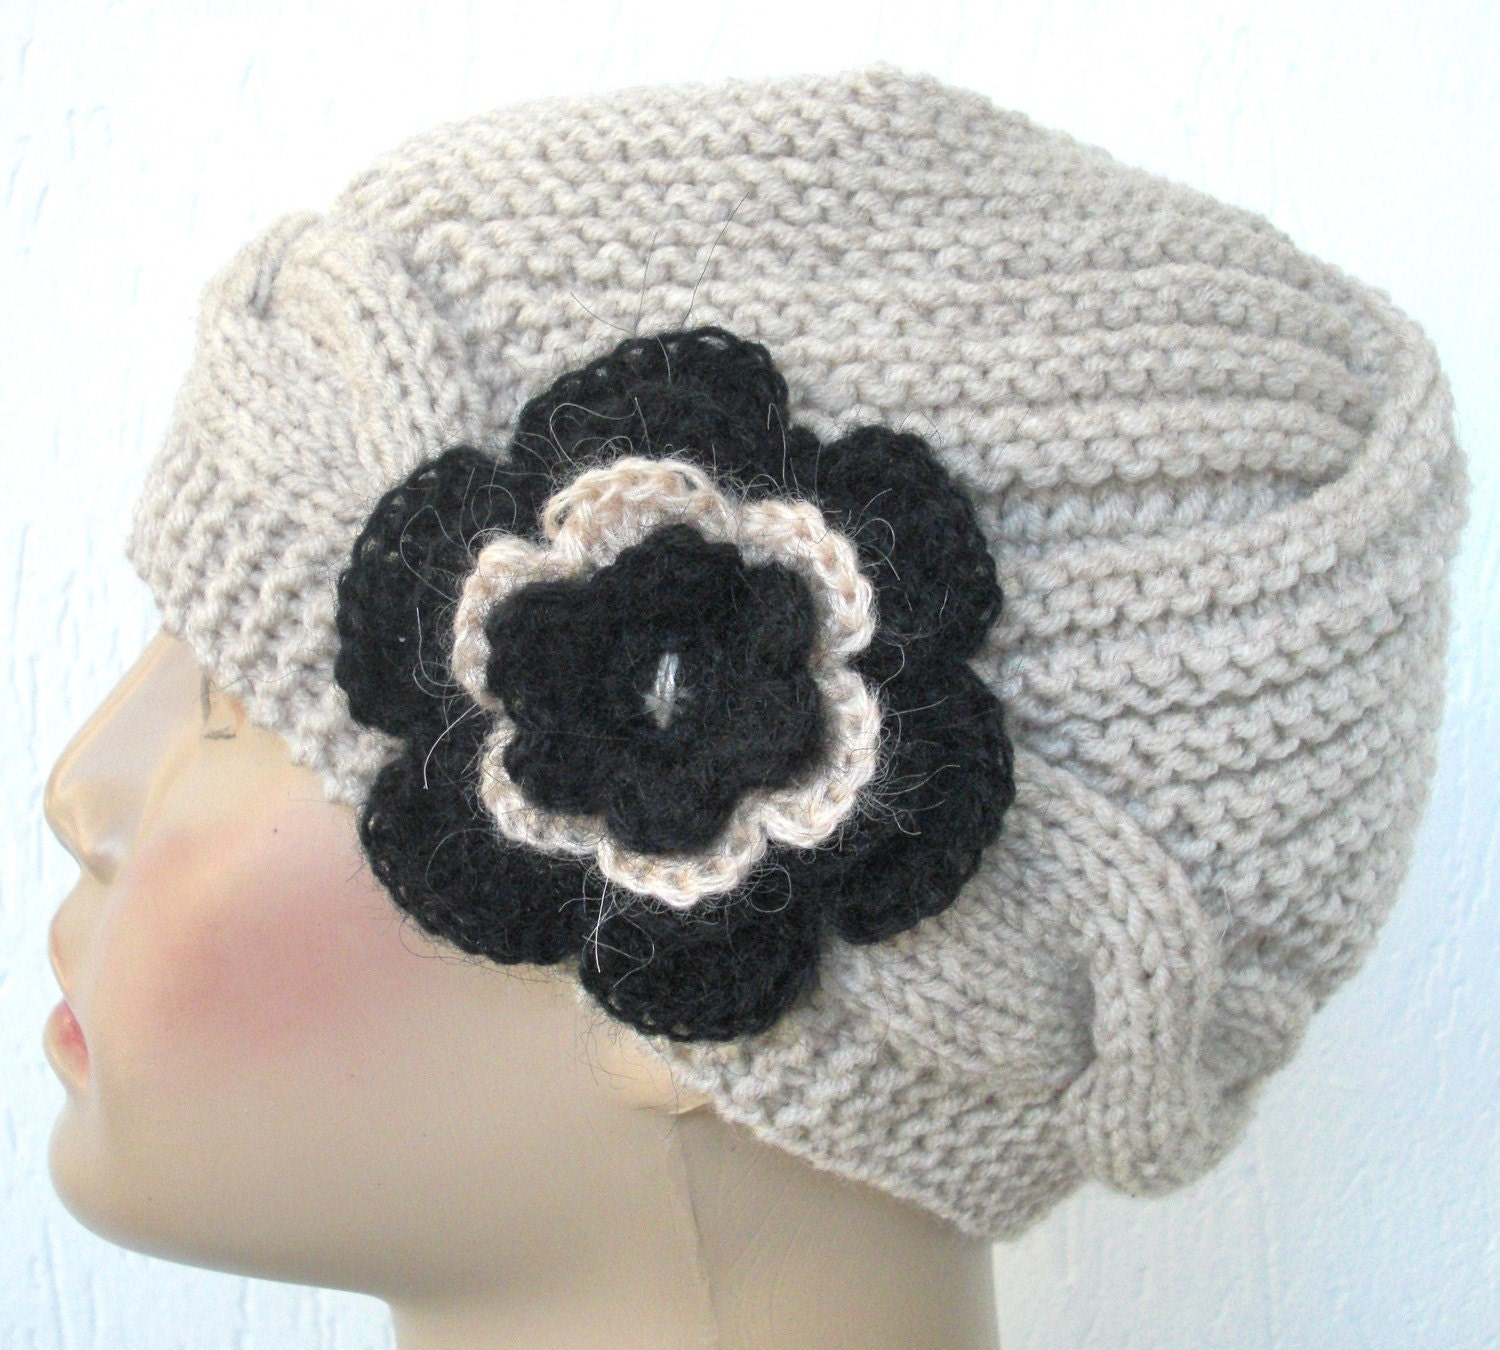 Beige  Hand Knit  HatWinter Accessories By by Ebruk on Etsy from etsy.com